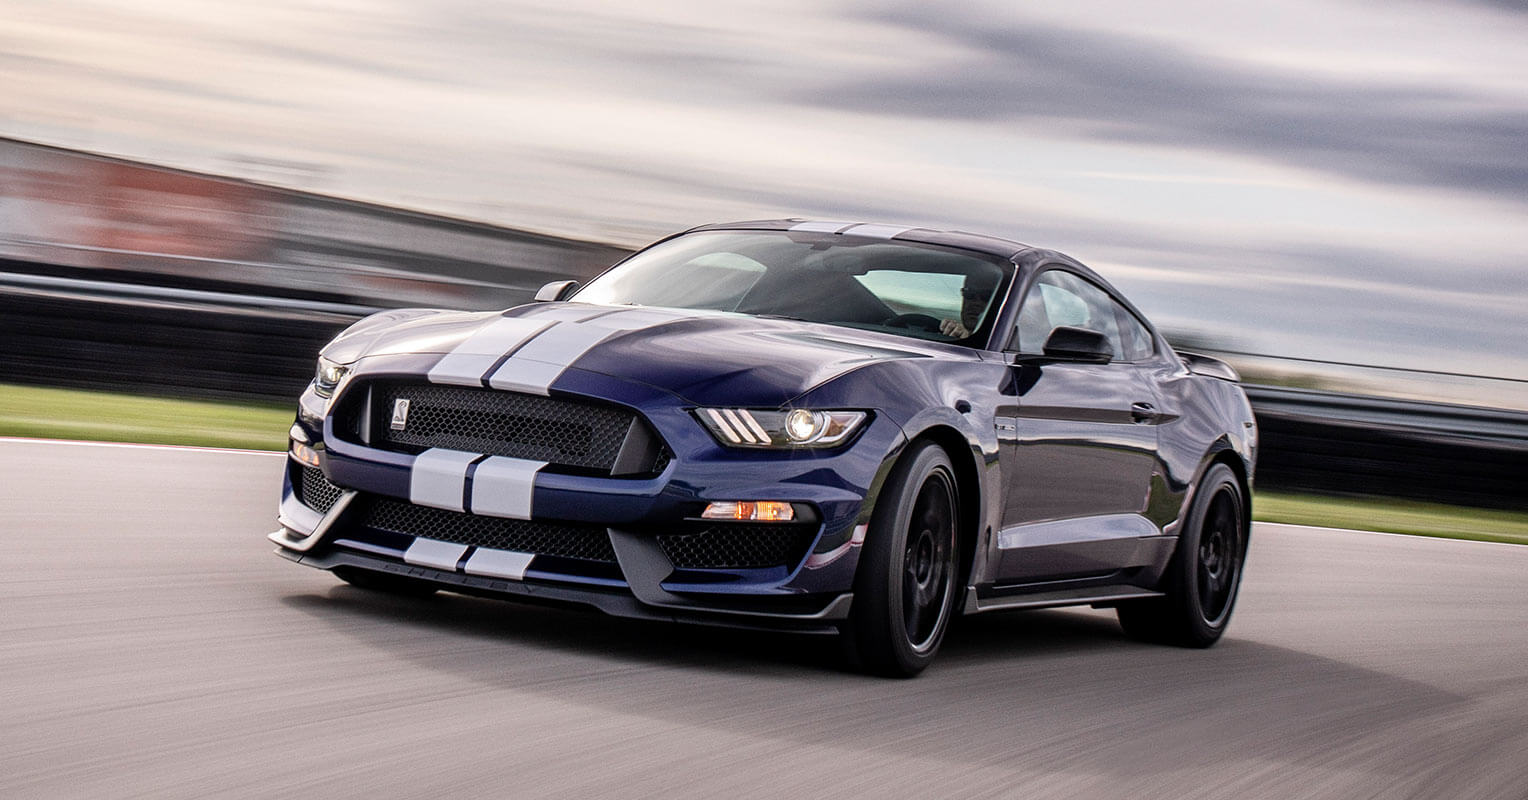 Ford Mustang Shelby GT350 2019 frontal